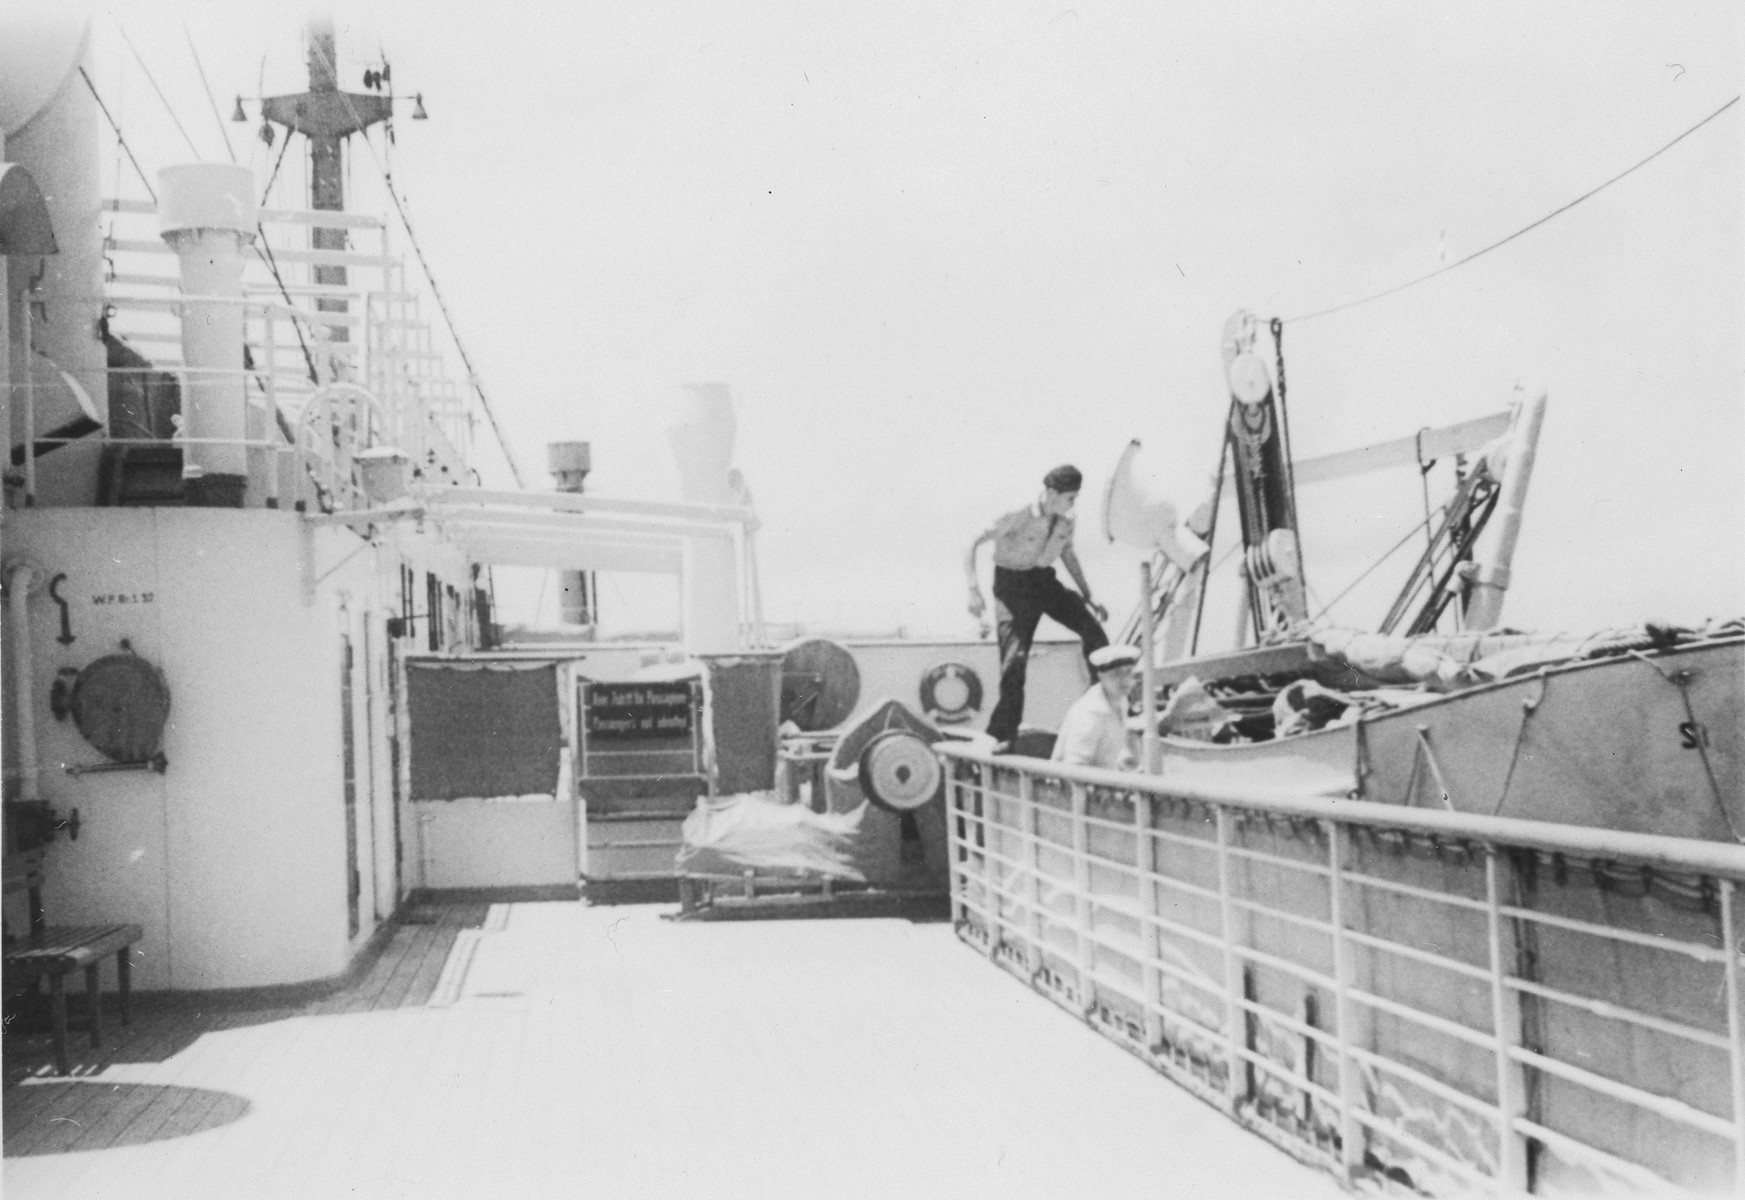 Crewmen board a lifeboat on the MS St. Louis.